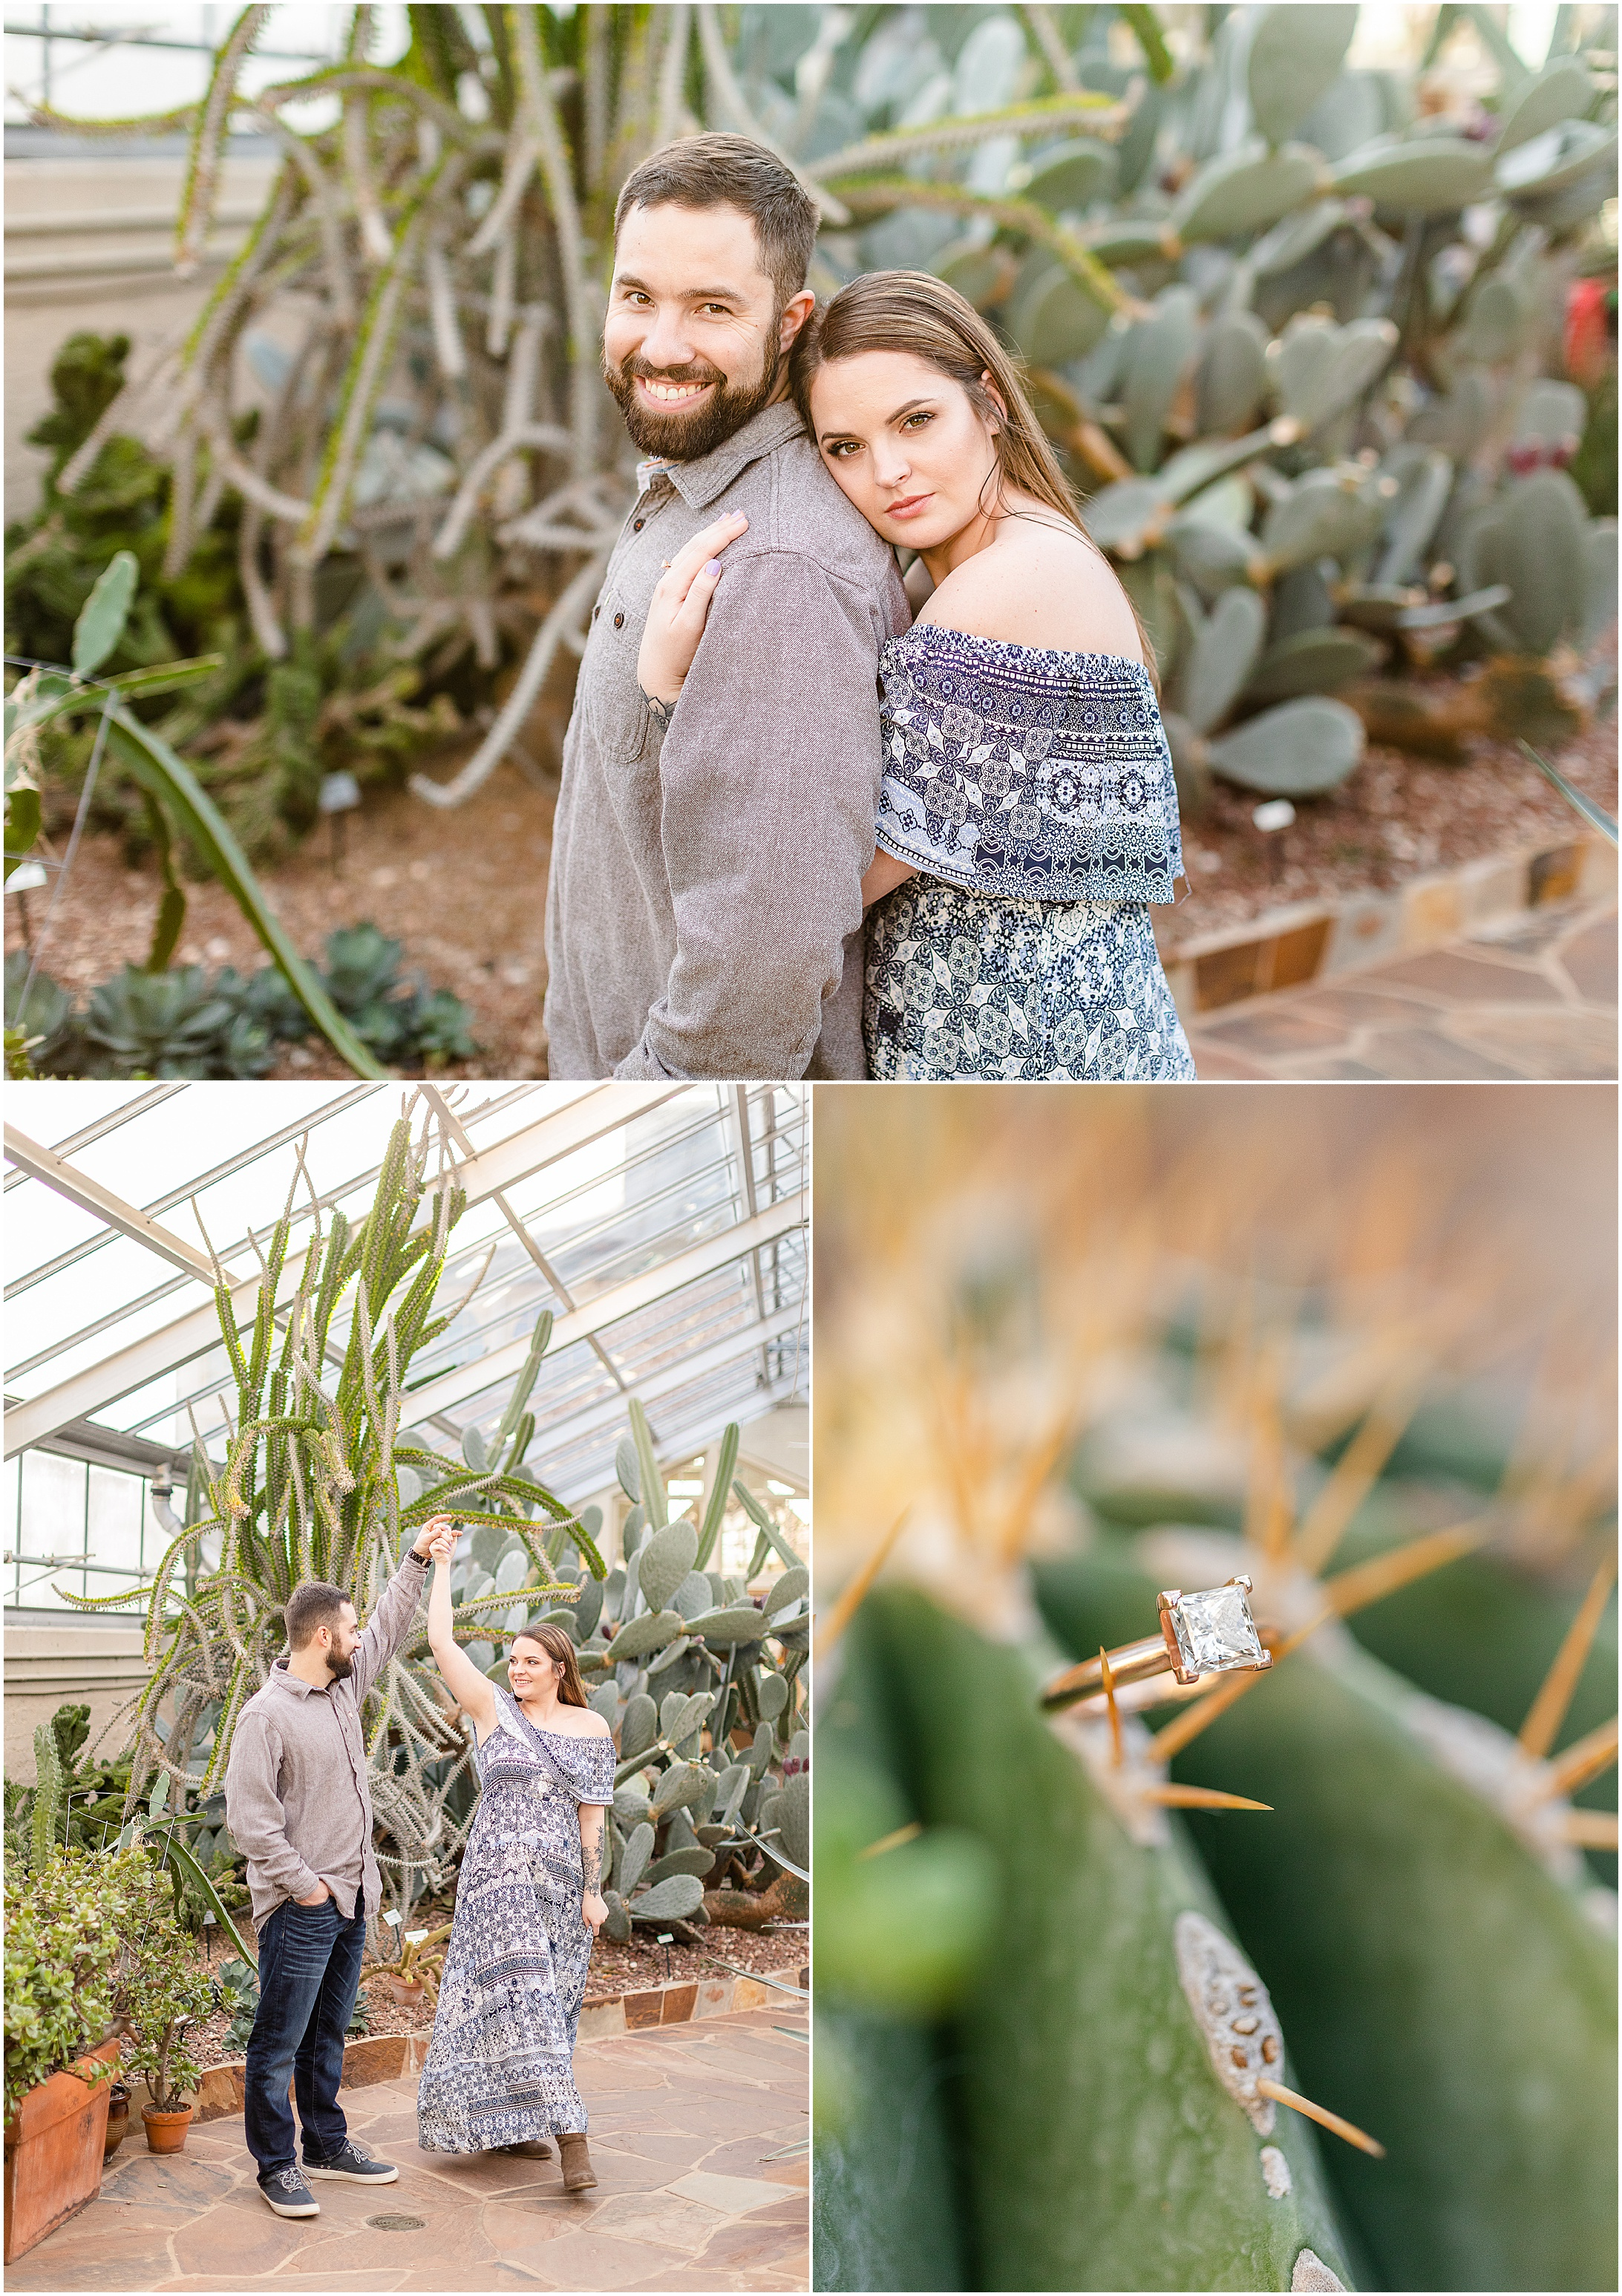 Rawlings-Conservatory-Engagement-Photos_0292.jpg